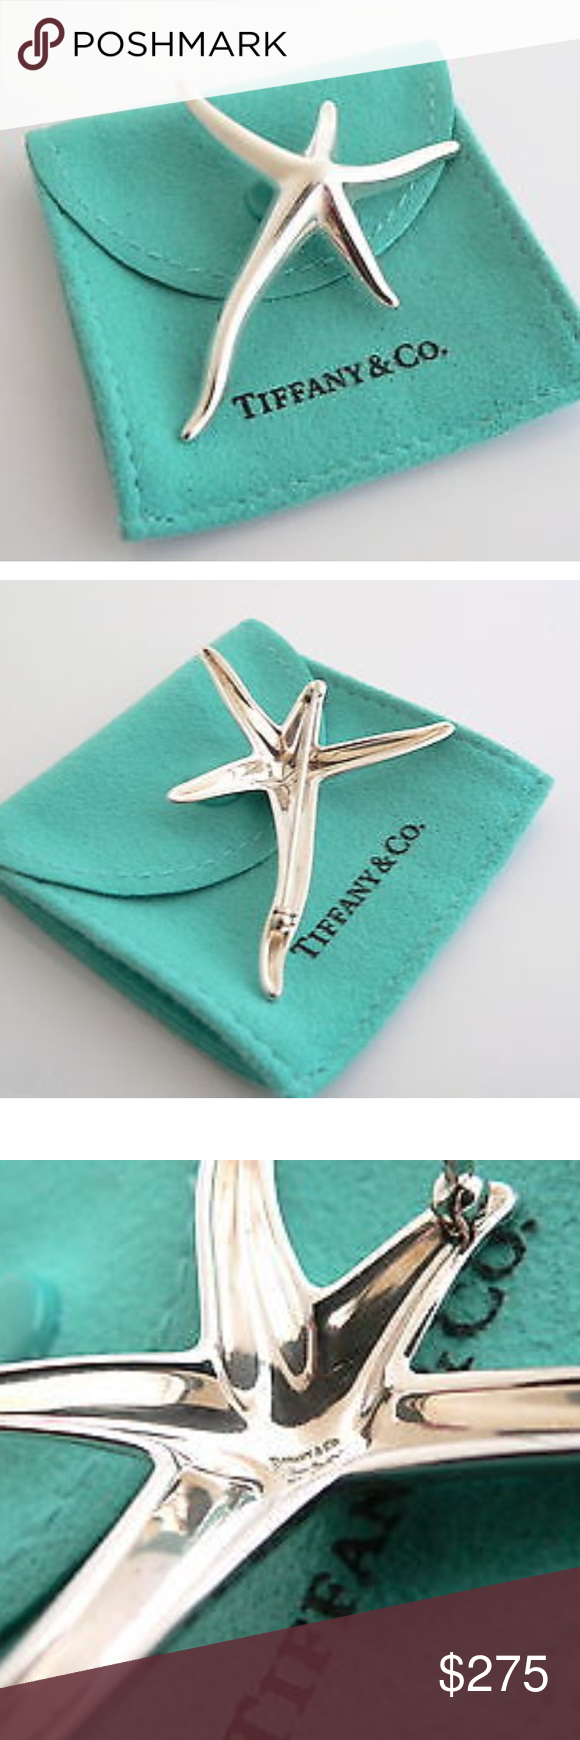 f8f1baf72 Tiffany & Co Elsa Peretti Starfish Brooch Tiffany and Co. Sterling Silver  Large Peretti Starfish Pin. Excellent condition. Size & Measurements: The  pin is ...